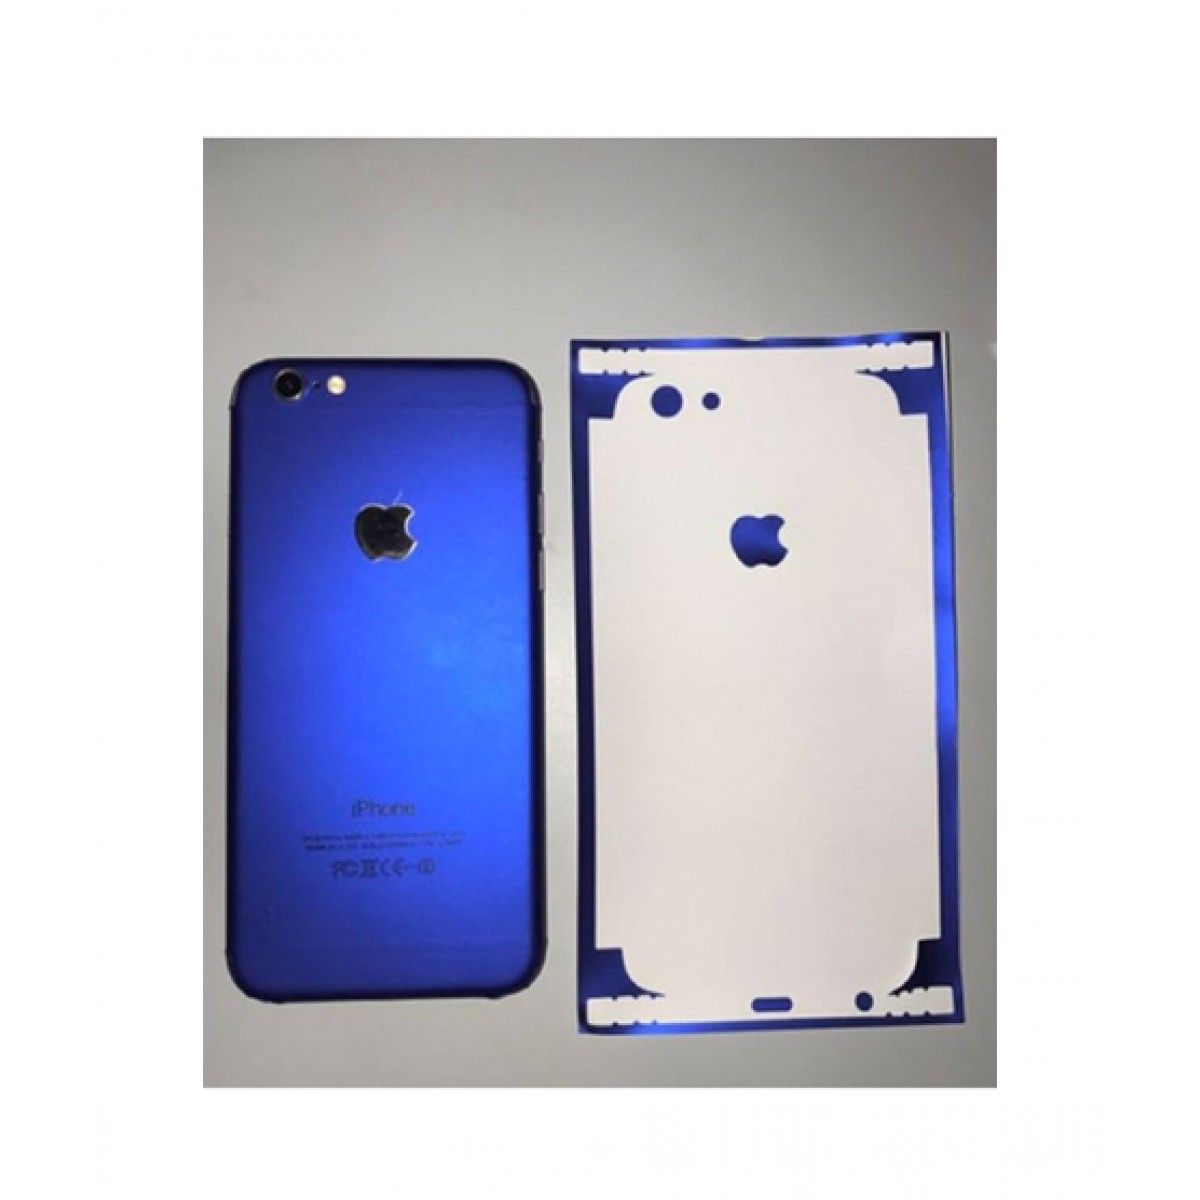 on sale be025 5da21 Techno Arena Plain Skin Blue Case For iPhone 6/6s